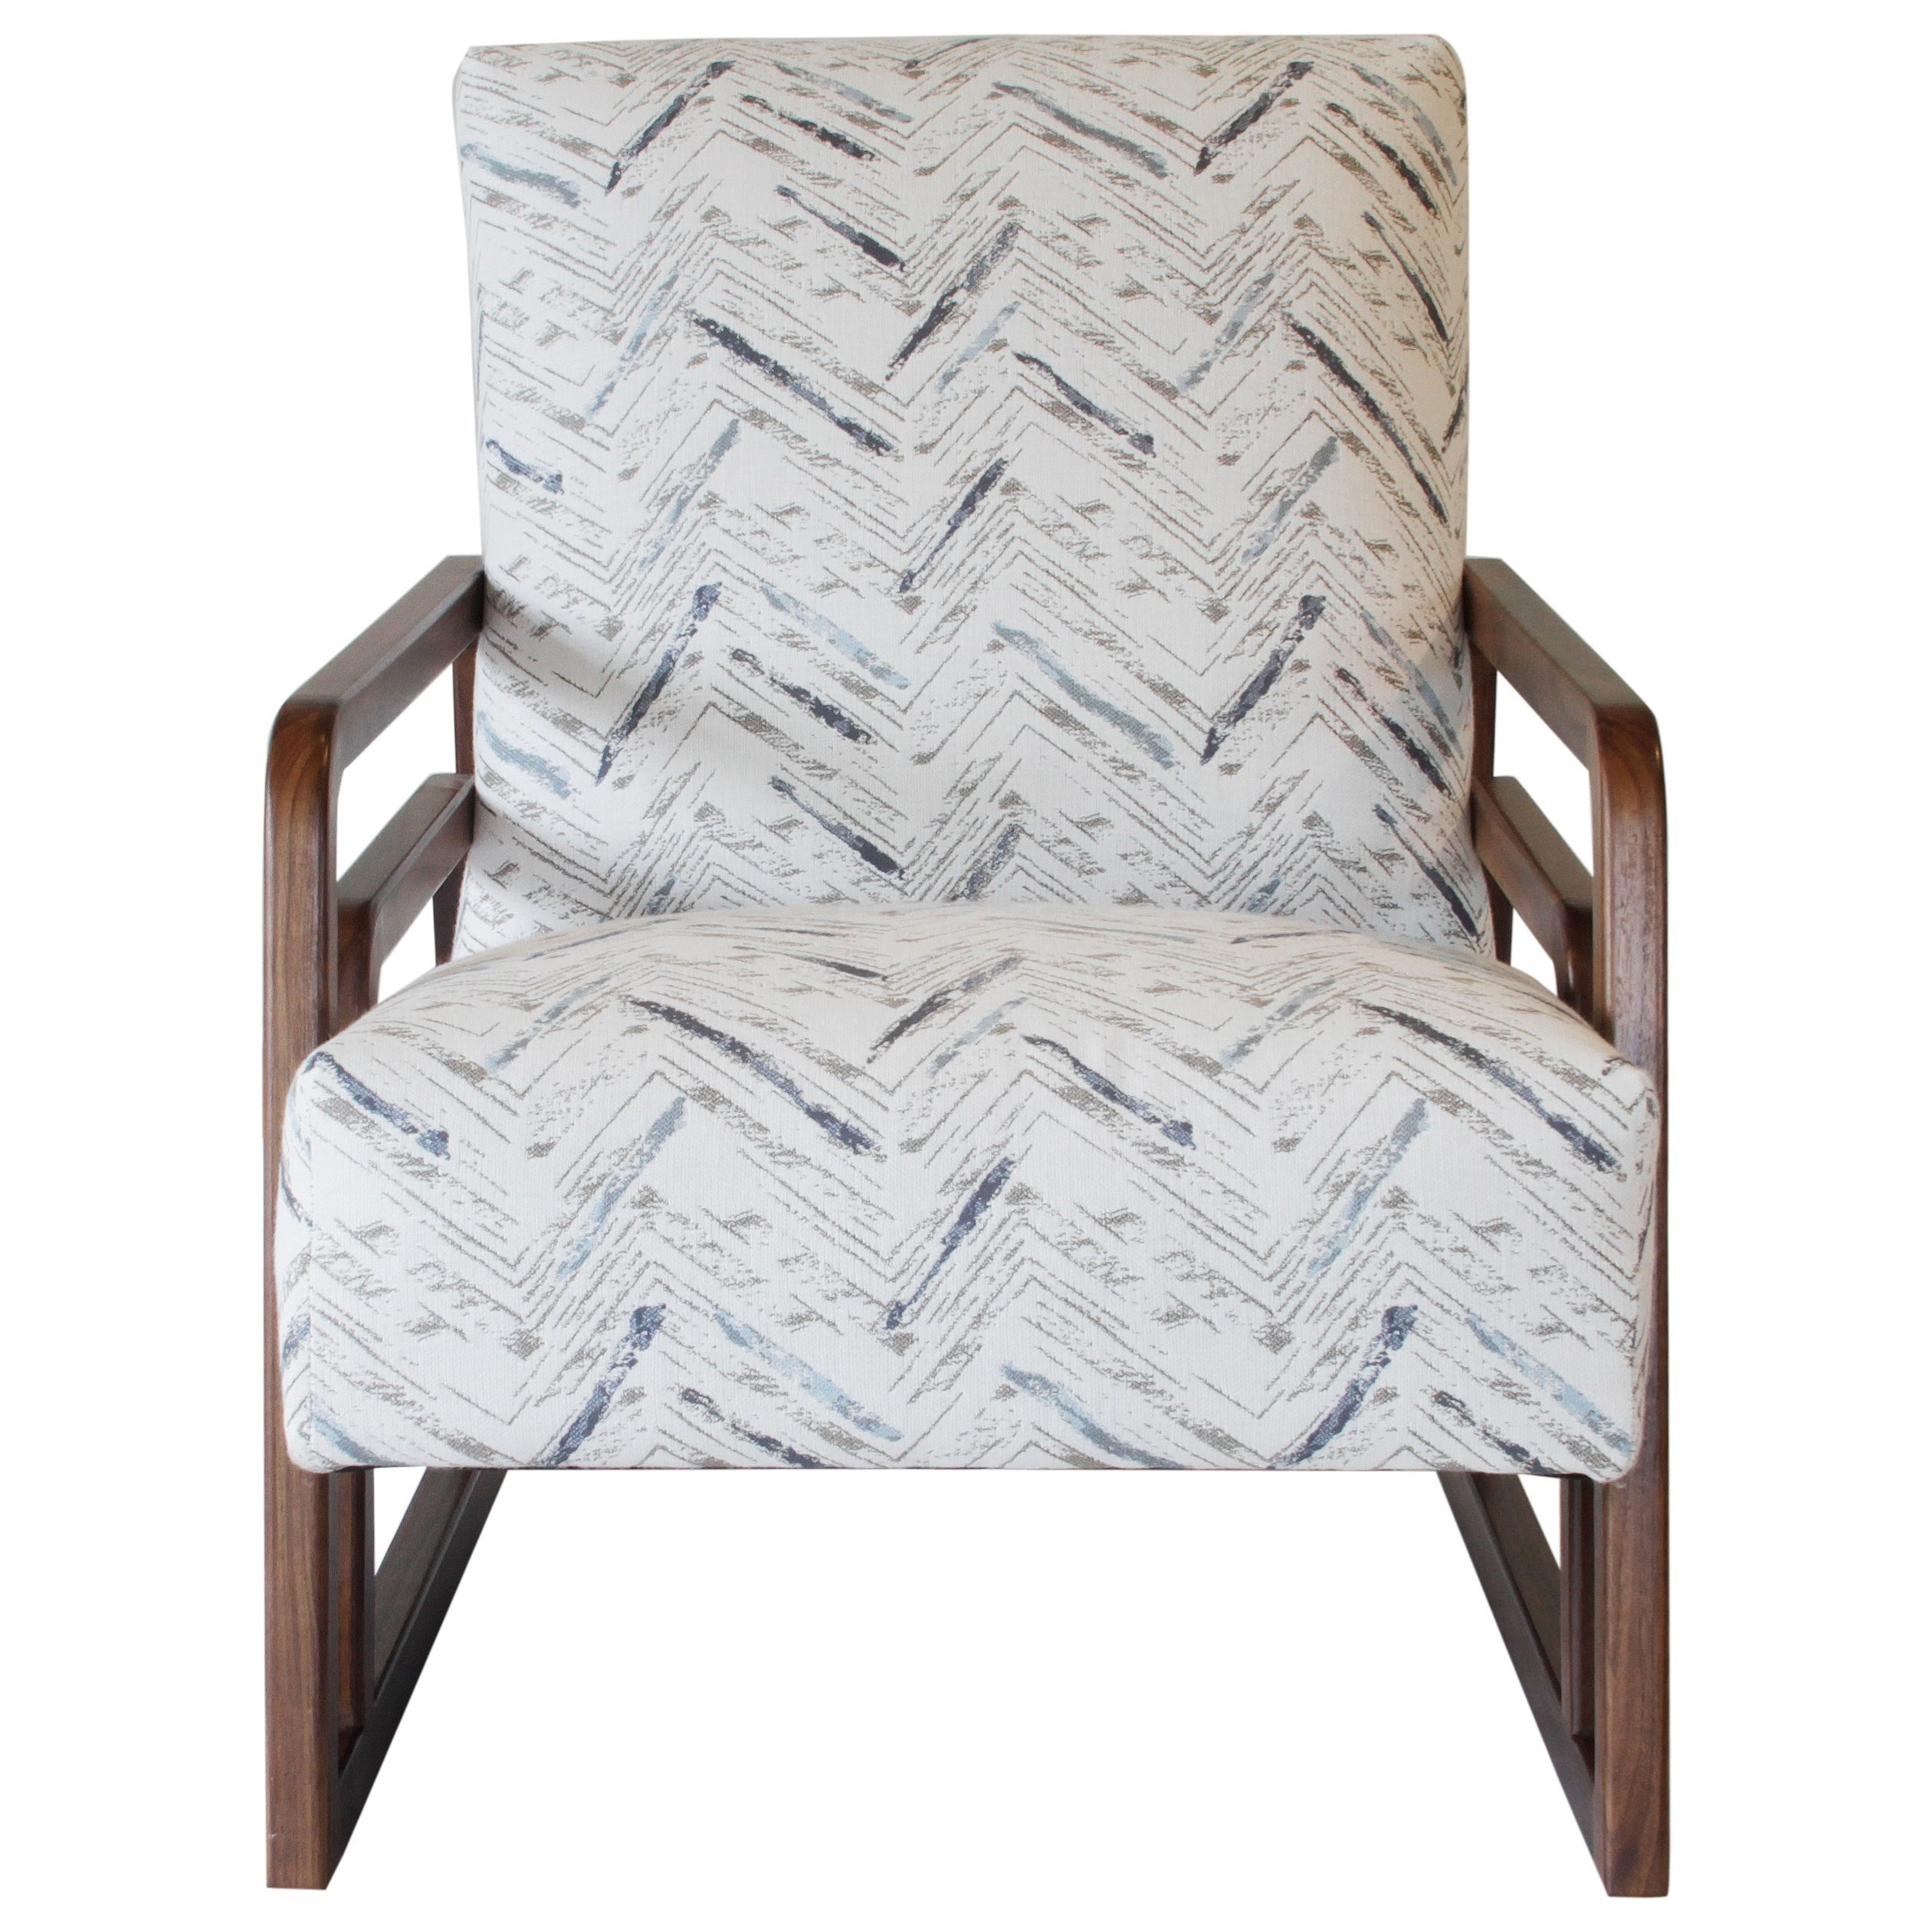 Jonathan Louis Accentuates Luna Accent Chair - Item Number: 55357-Sky